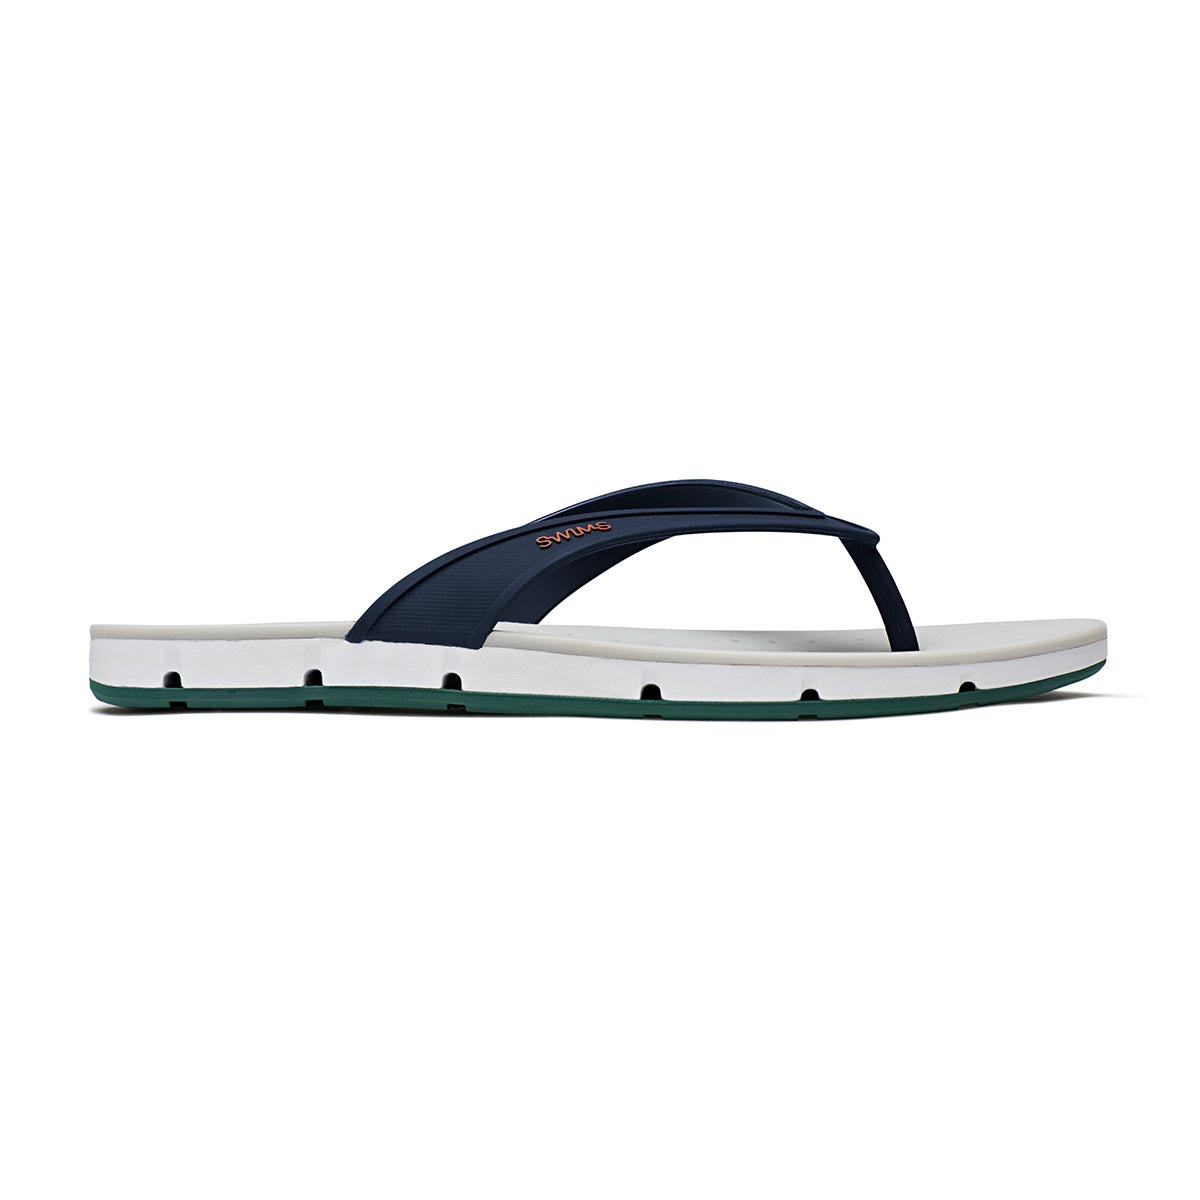 Breeze Thong Sandal - background::white,variant::NAVY/WHITE/COURT GREEN